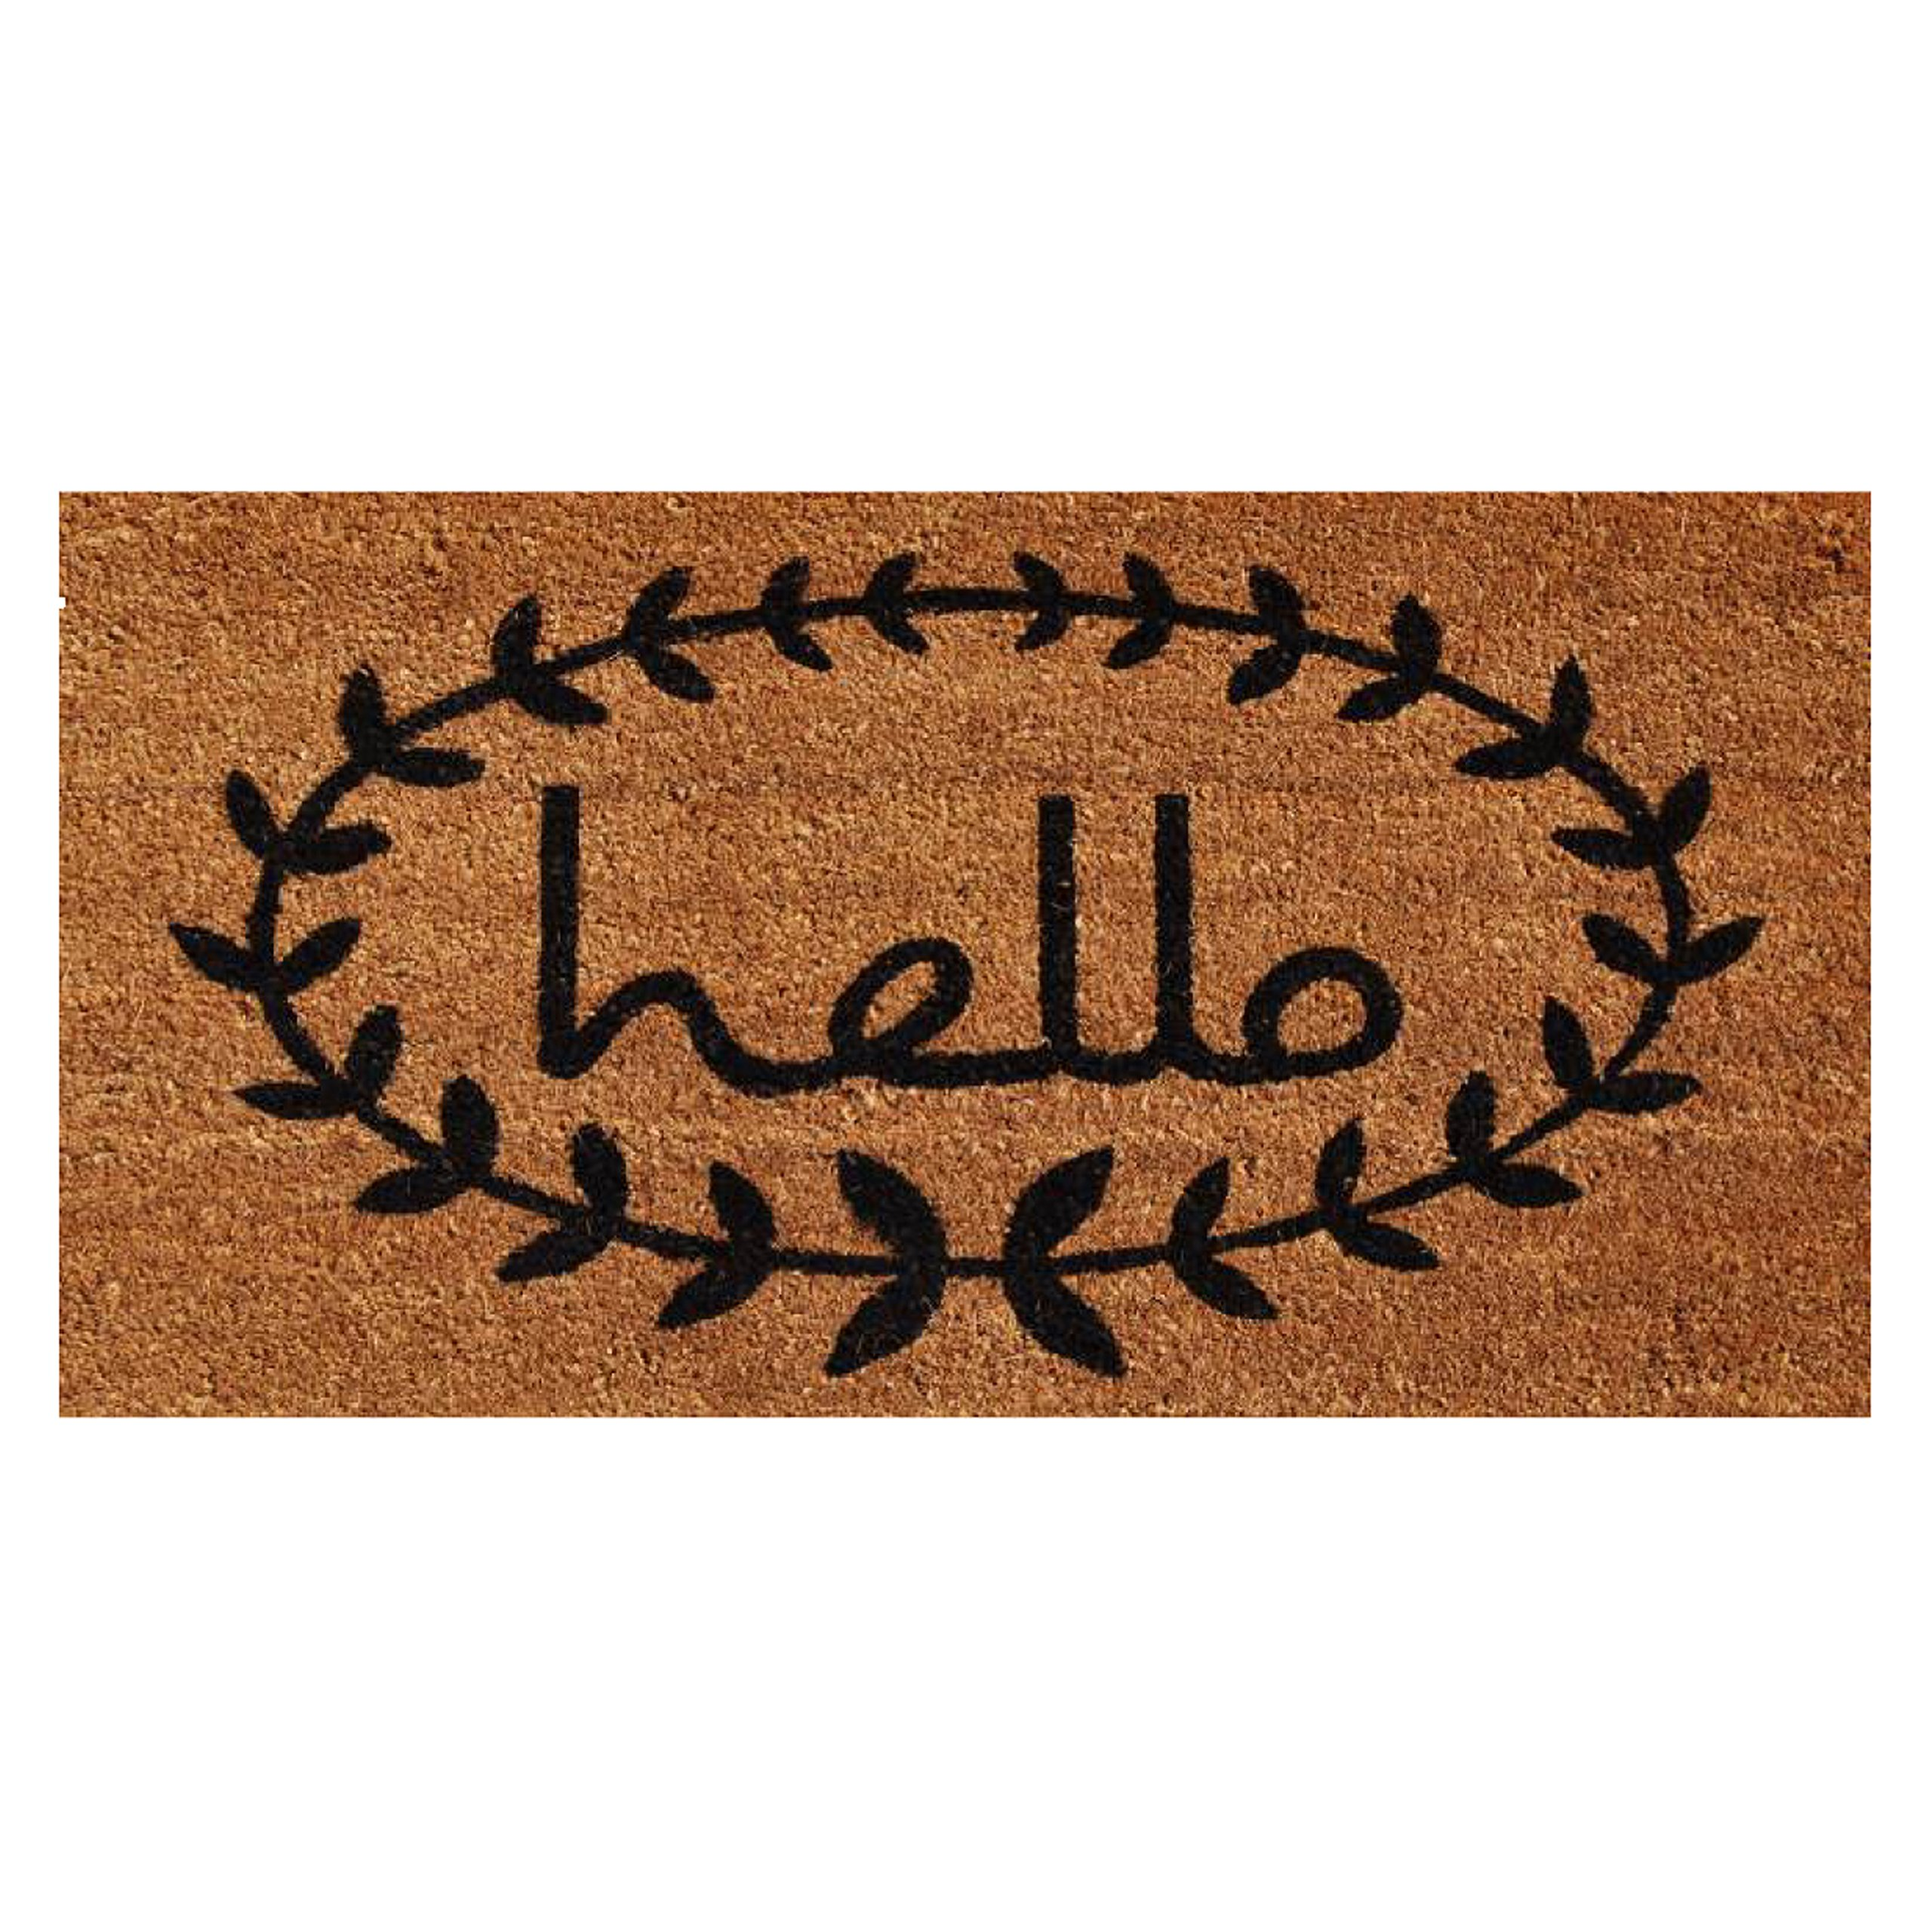 Home & More 121813672 Calico Hello Doormat, 3' x 6', Natural/Black by Home & More